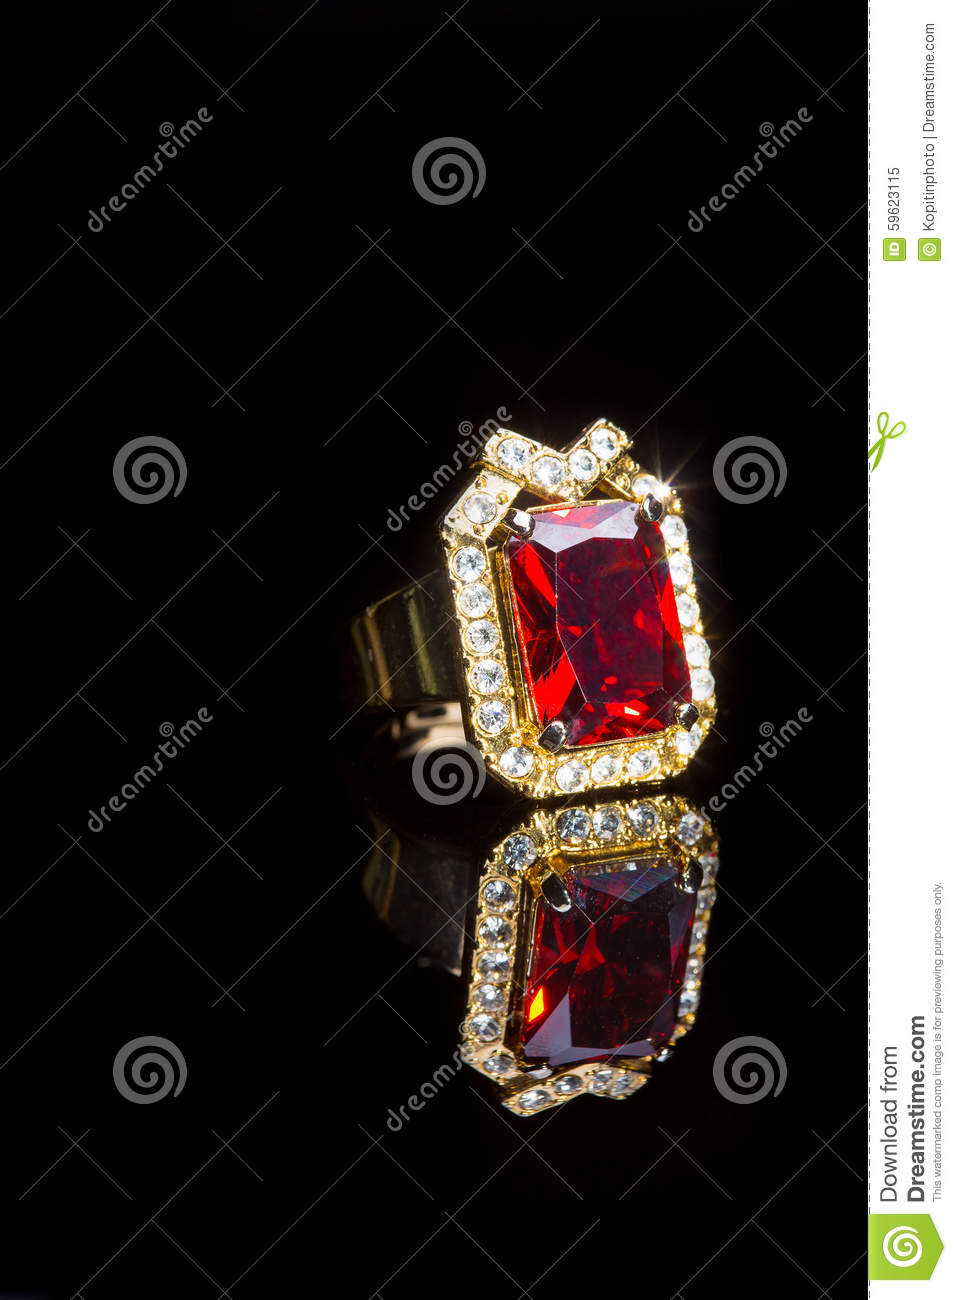 Beautiful Gold Ring With Precious Stone Stock Image - Image of ...